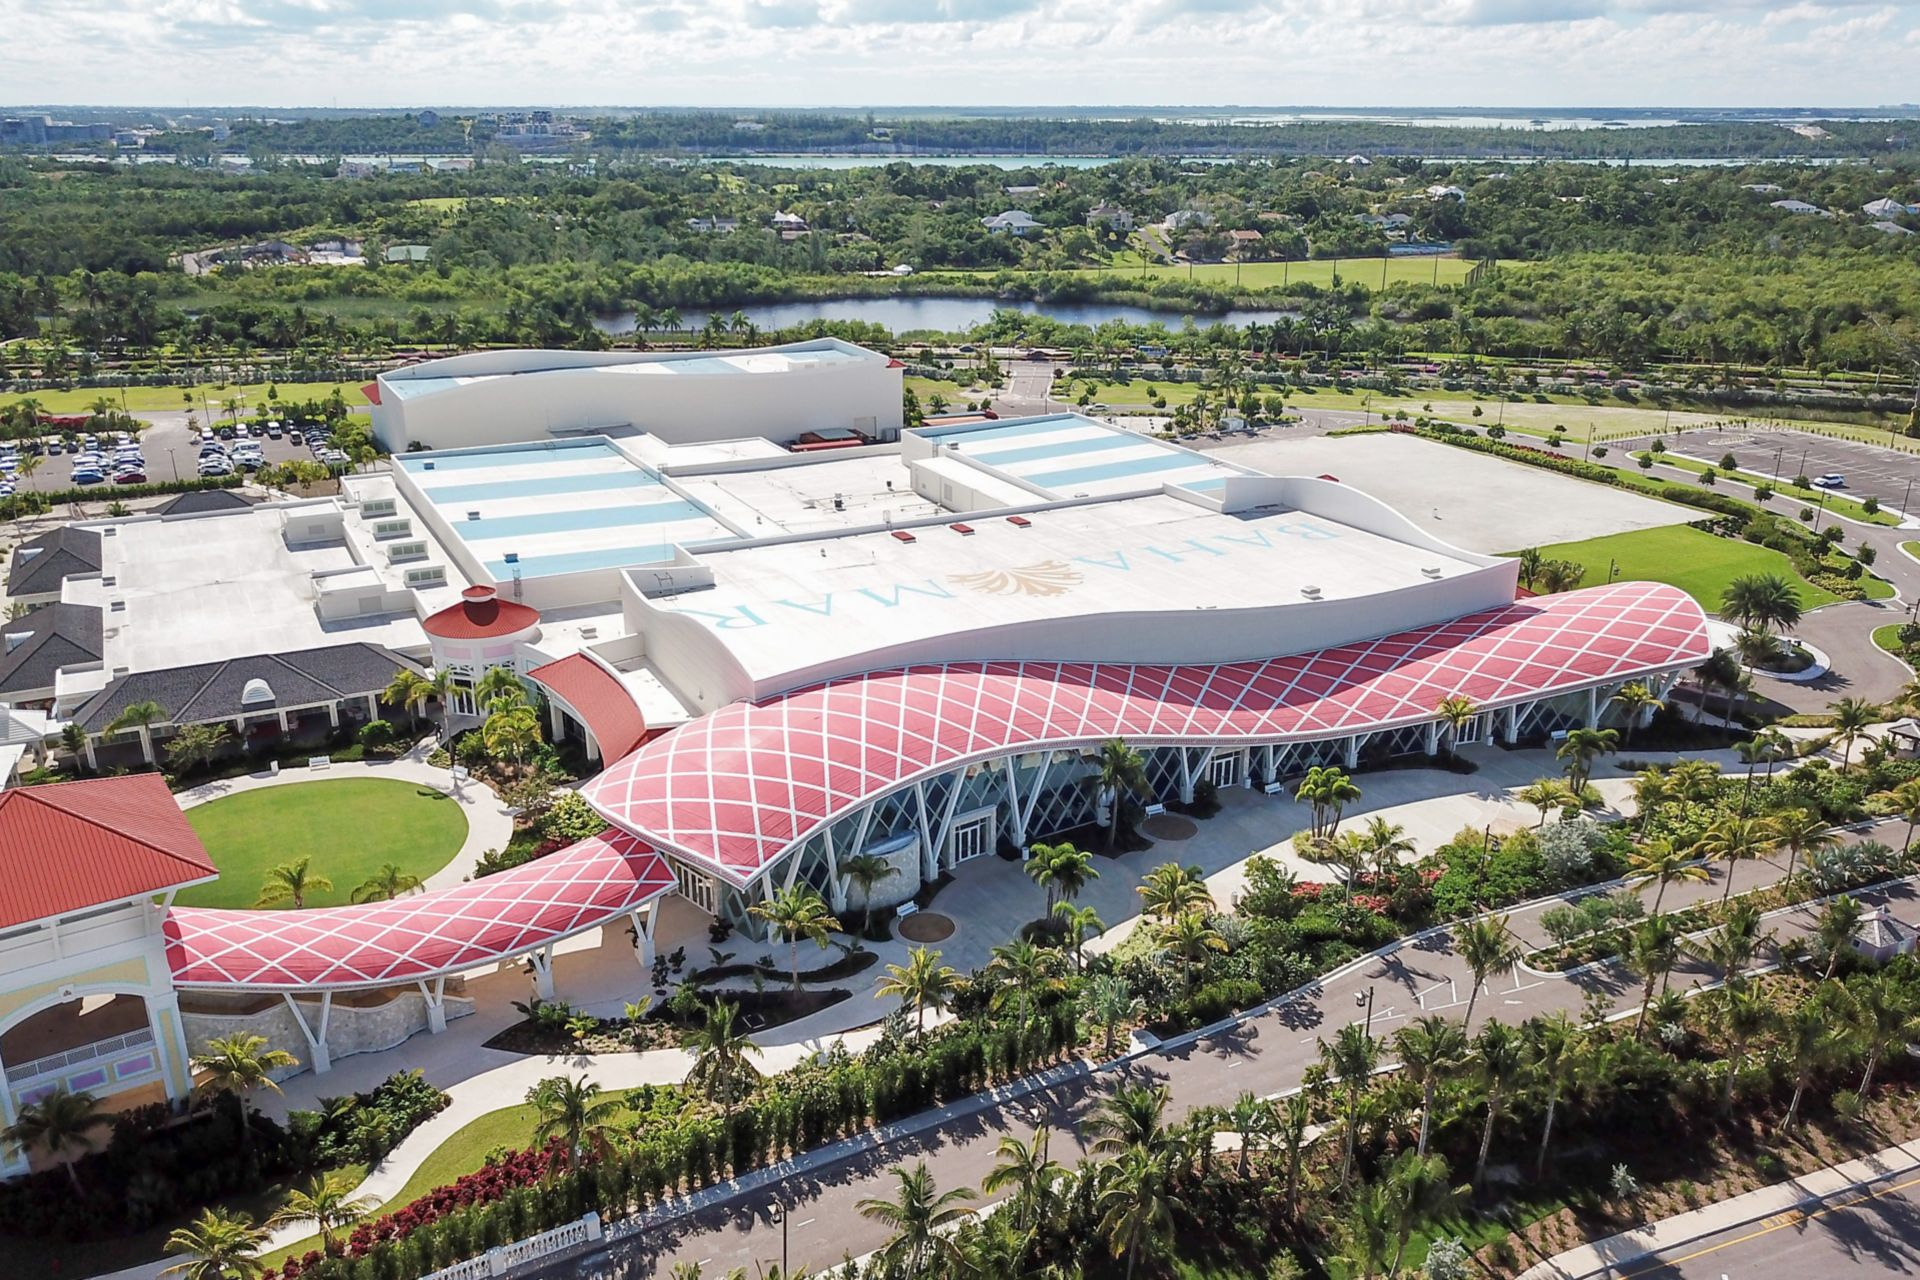 Single-ply roof PVC membrane of Sarnafil adhered roofing system installed on  Baha Mar Resort in the Bahamas